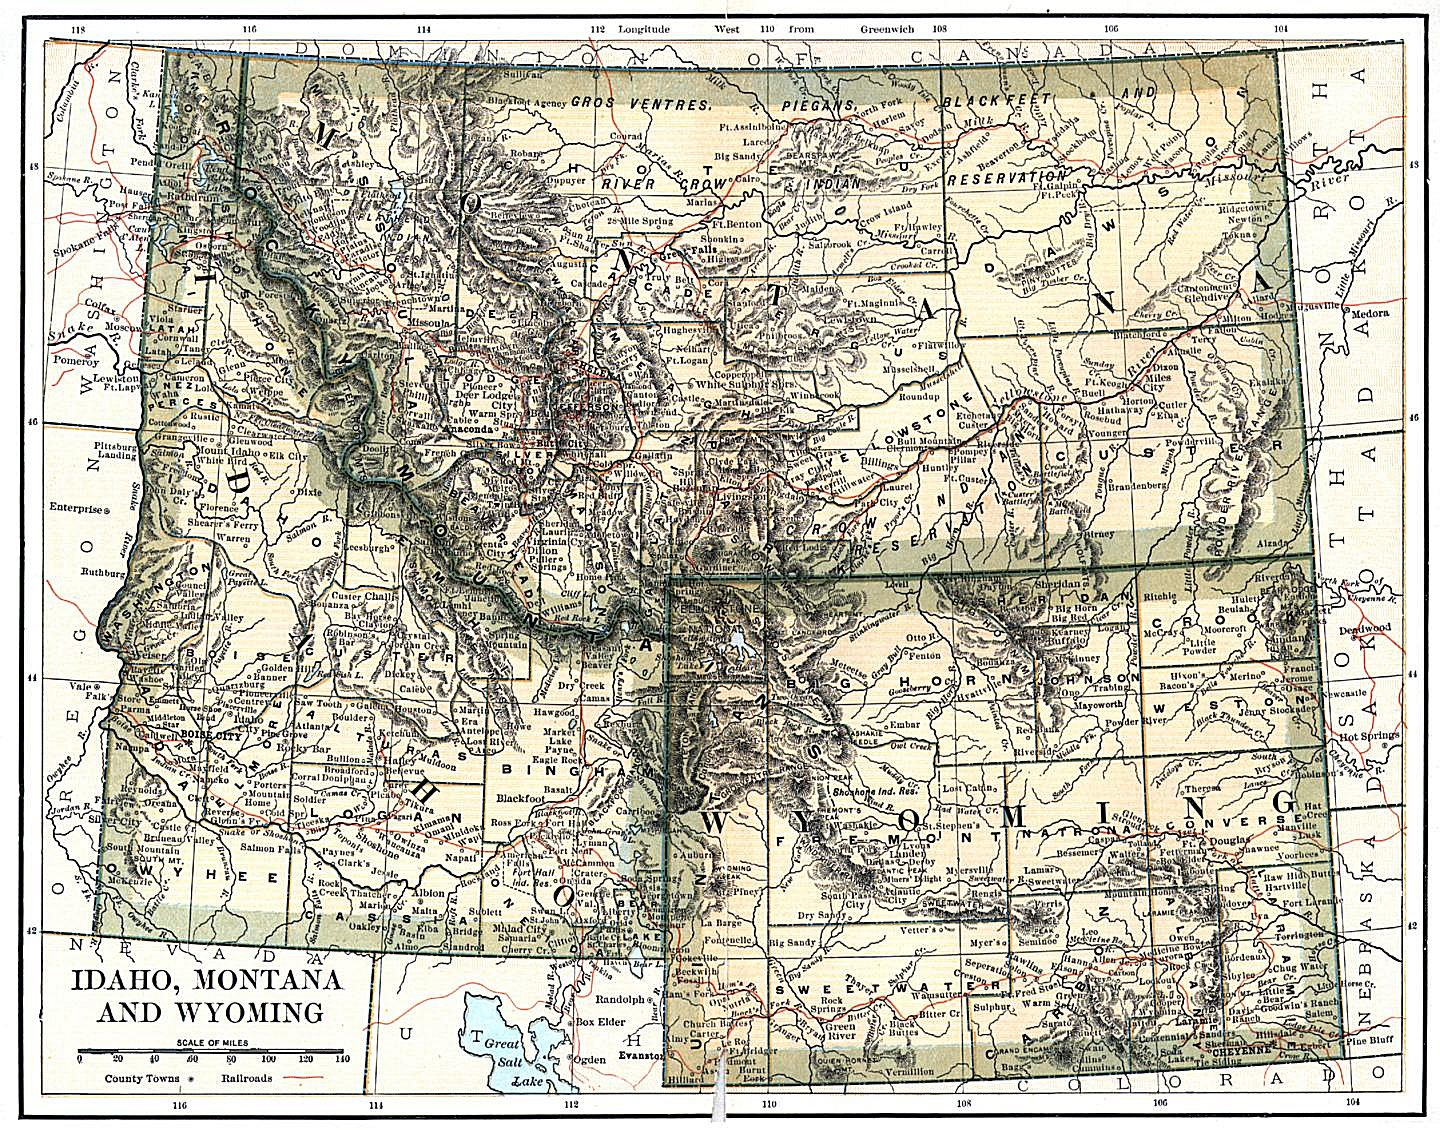 Wyoming Maps Wyoming Digital Map Library Table Of Contents - Wyoming map